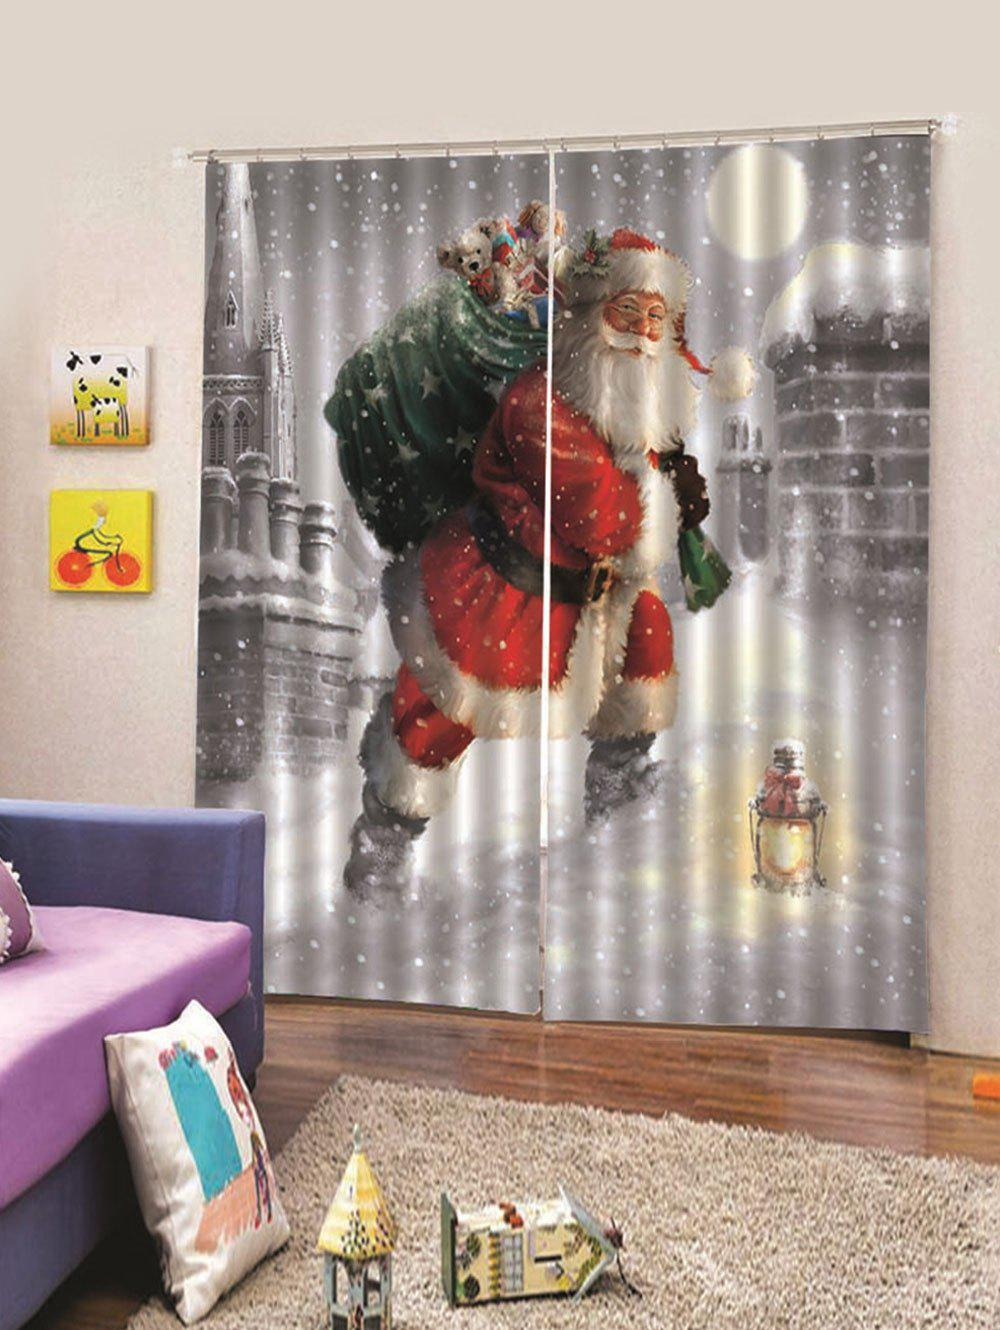 Store Snowy Taking Gifts Santa Christmas Print Window Curtains